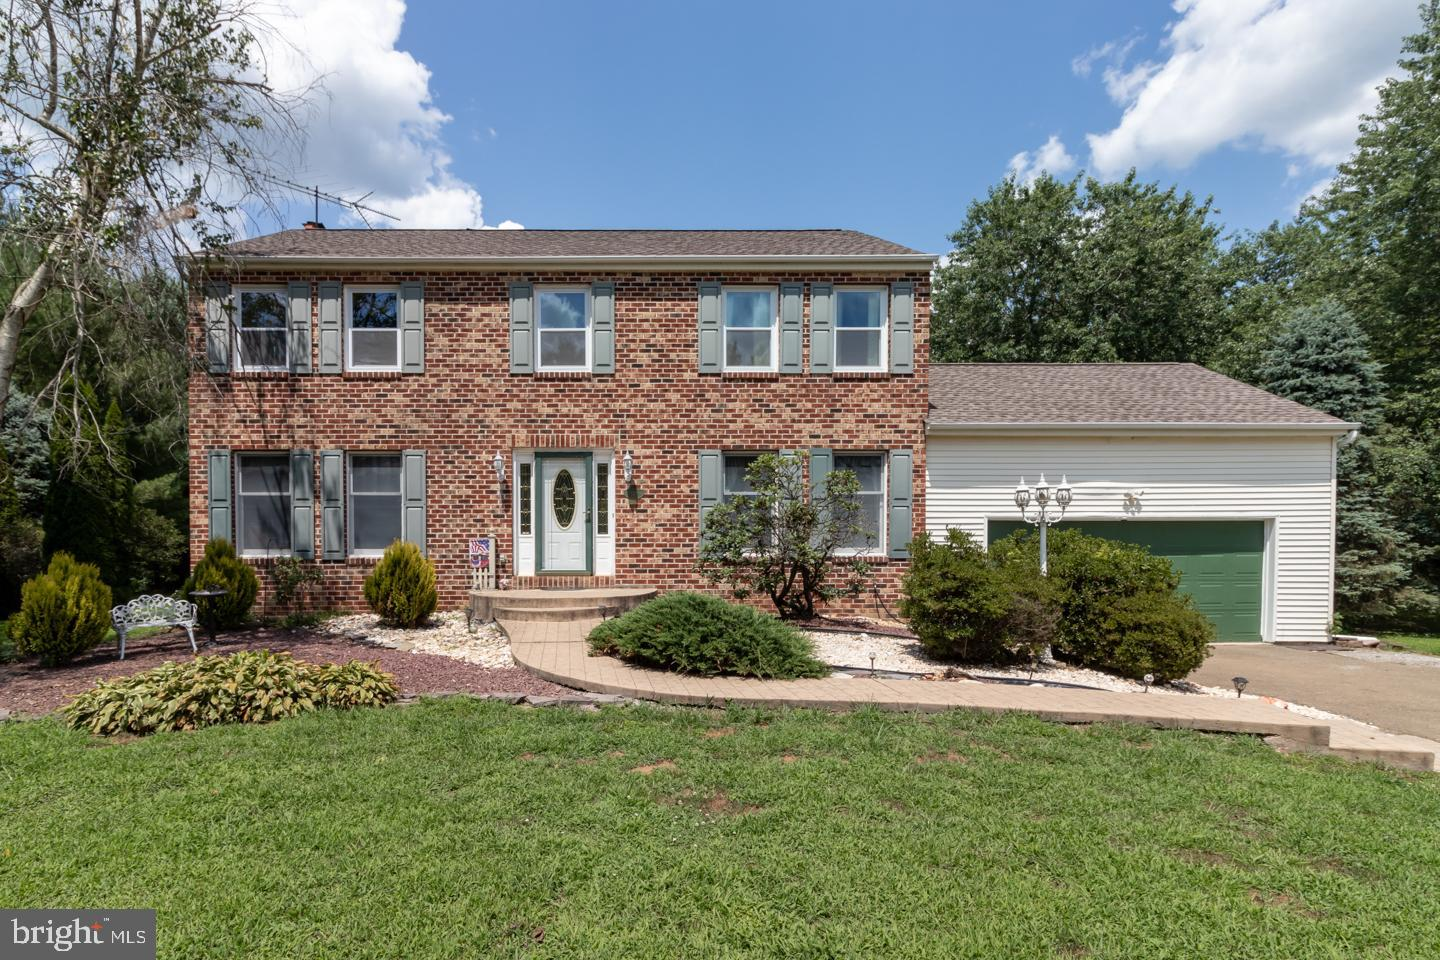 131 CARRIAGE RUN ROAD, LINCOLN UNIVERSITY, PA 19352